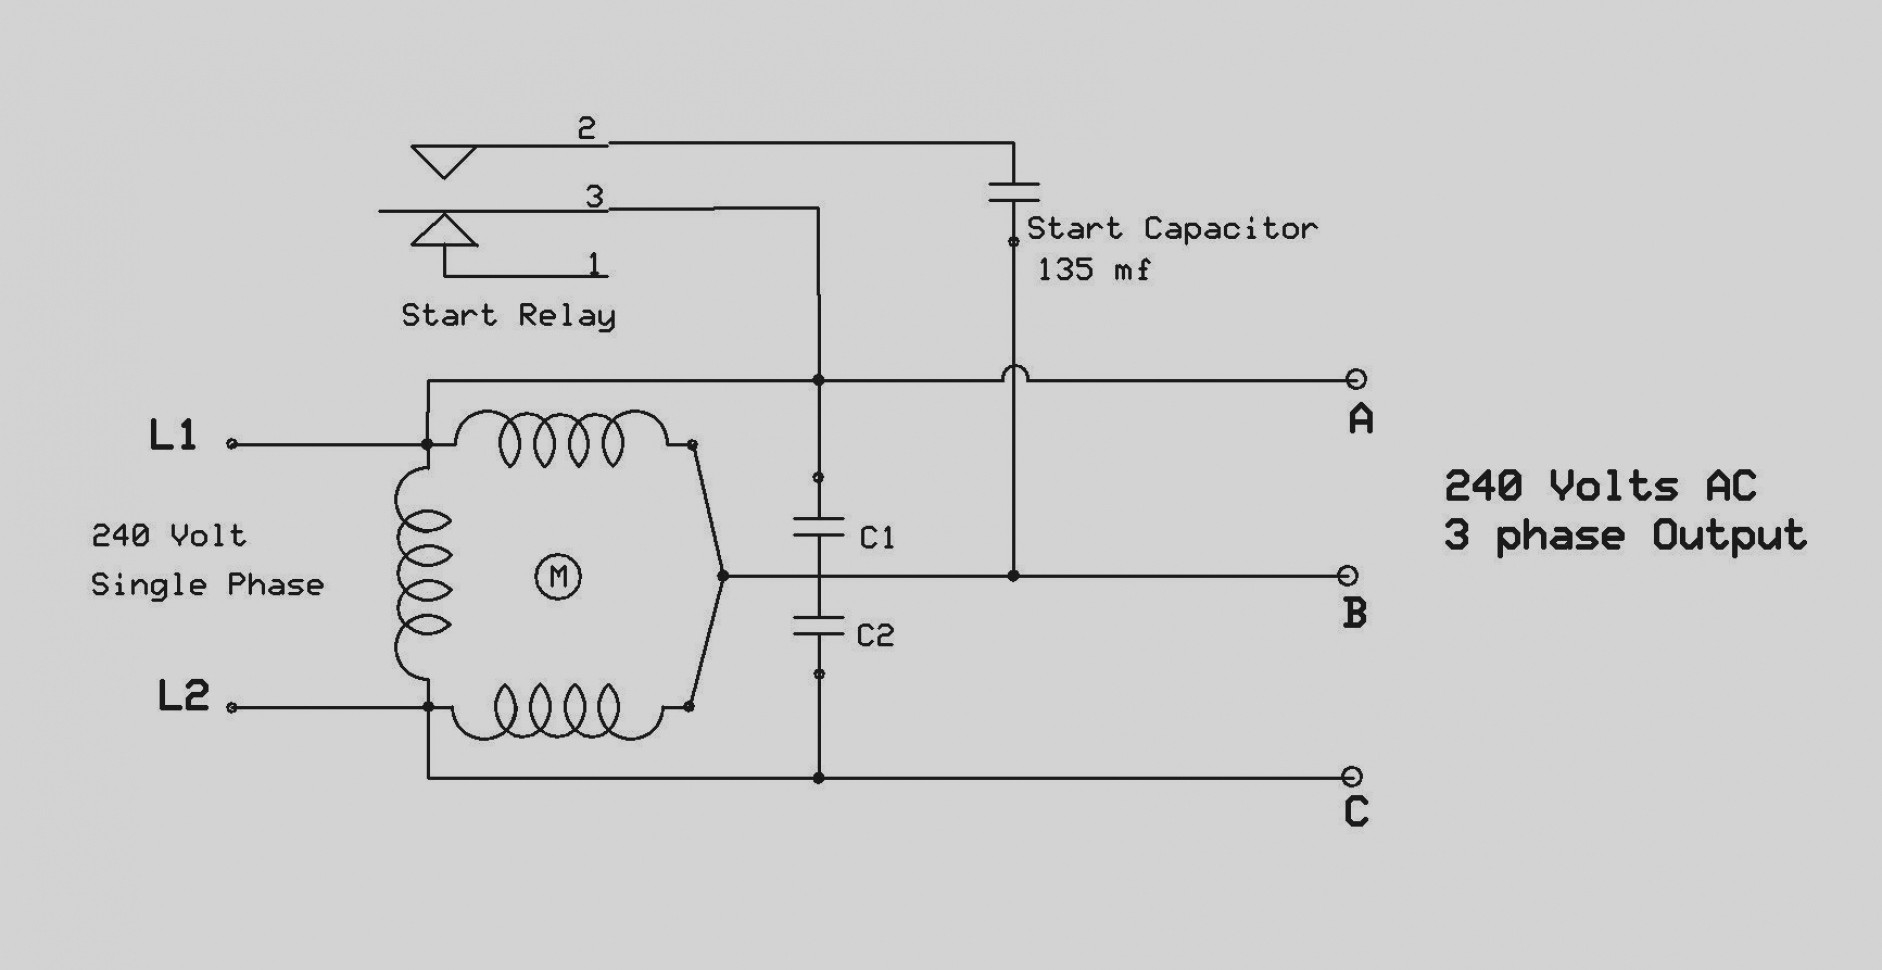 Motor Starter Wiring Diagram With 480v 3 Phase Input To Two 240v Single Phase Heayers